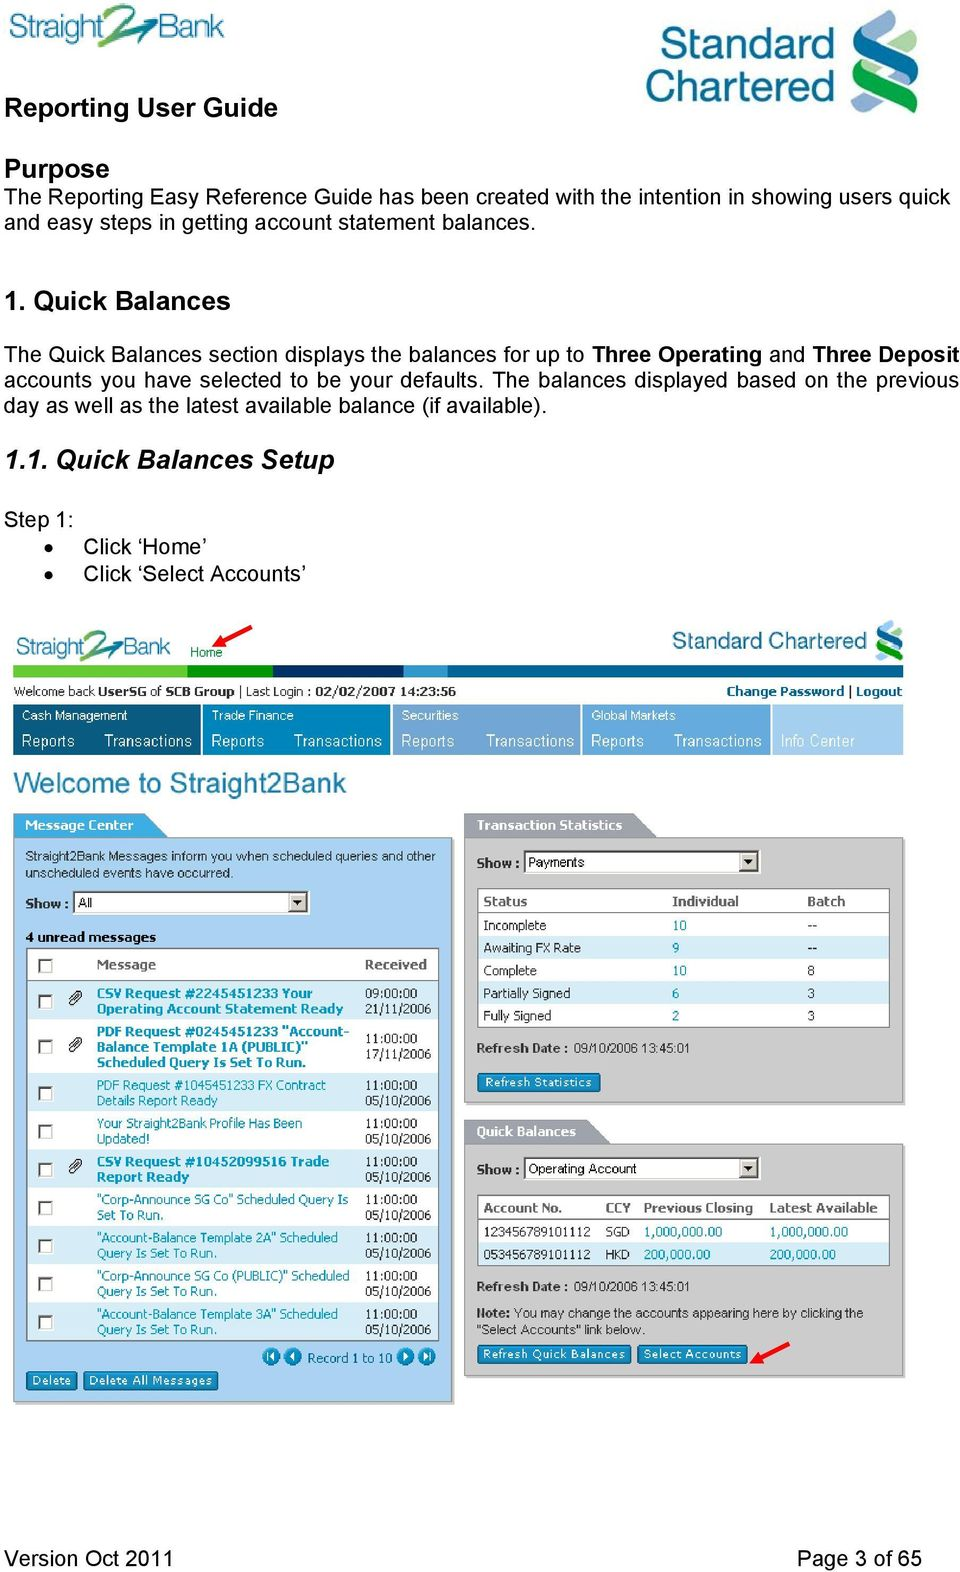 Quick Balances The Quick Balances section displays the balances for up to Three Operating and Three Deposit accounts you have